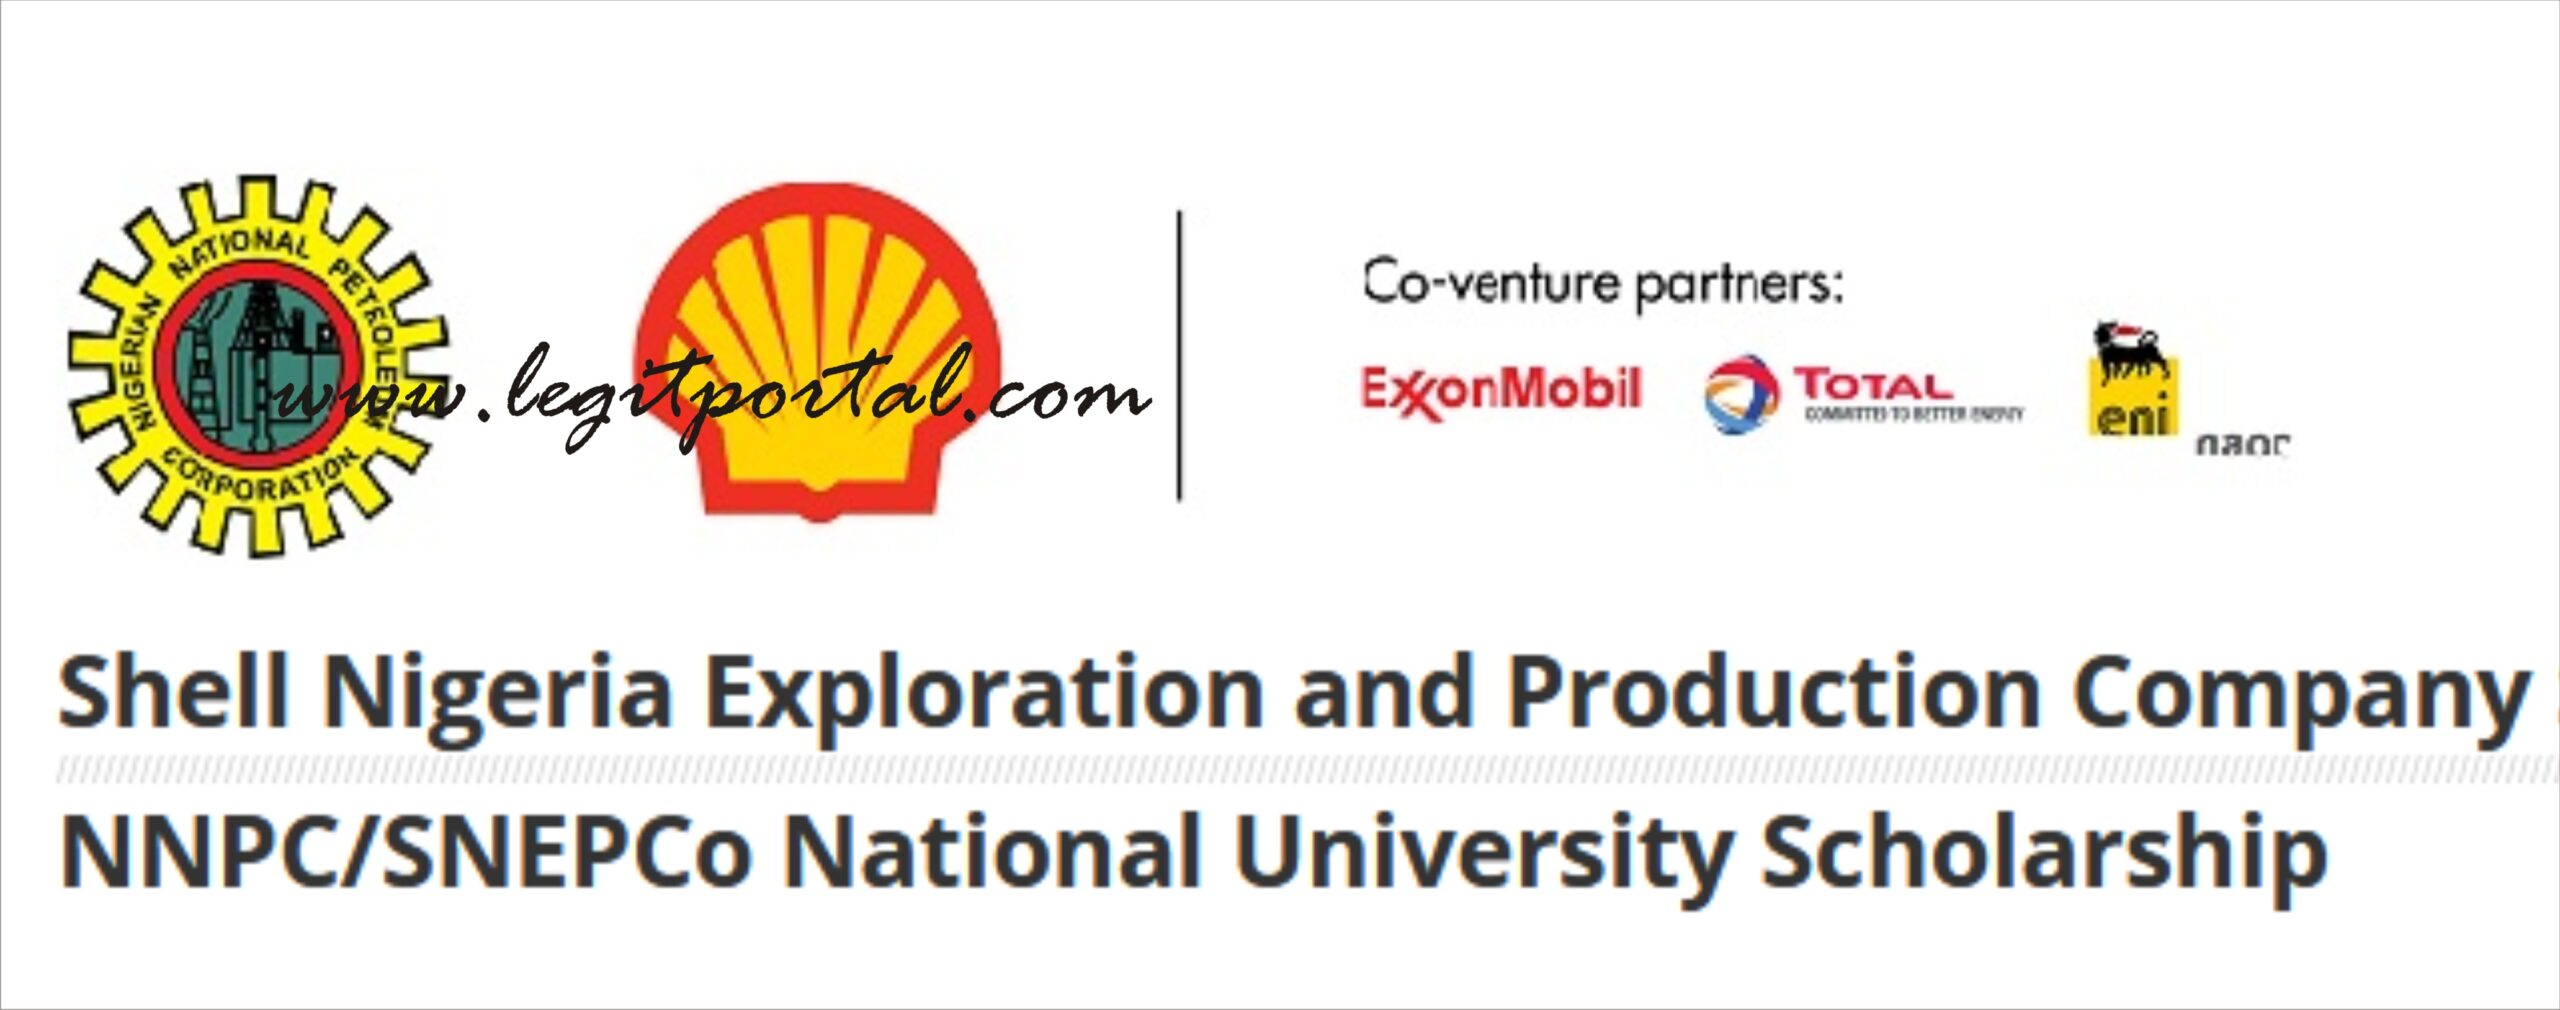 NNPC/SNEPCo National University Scholarship